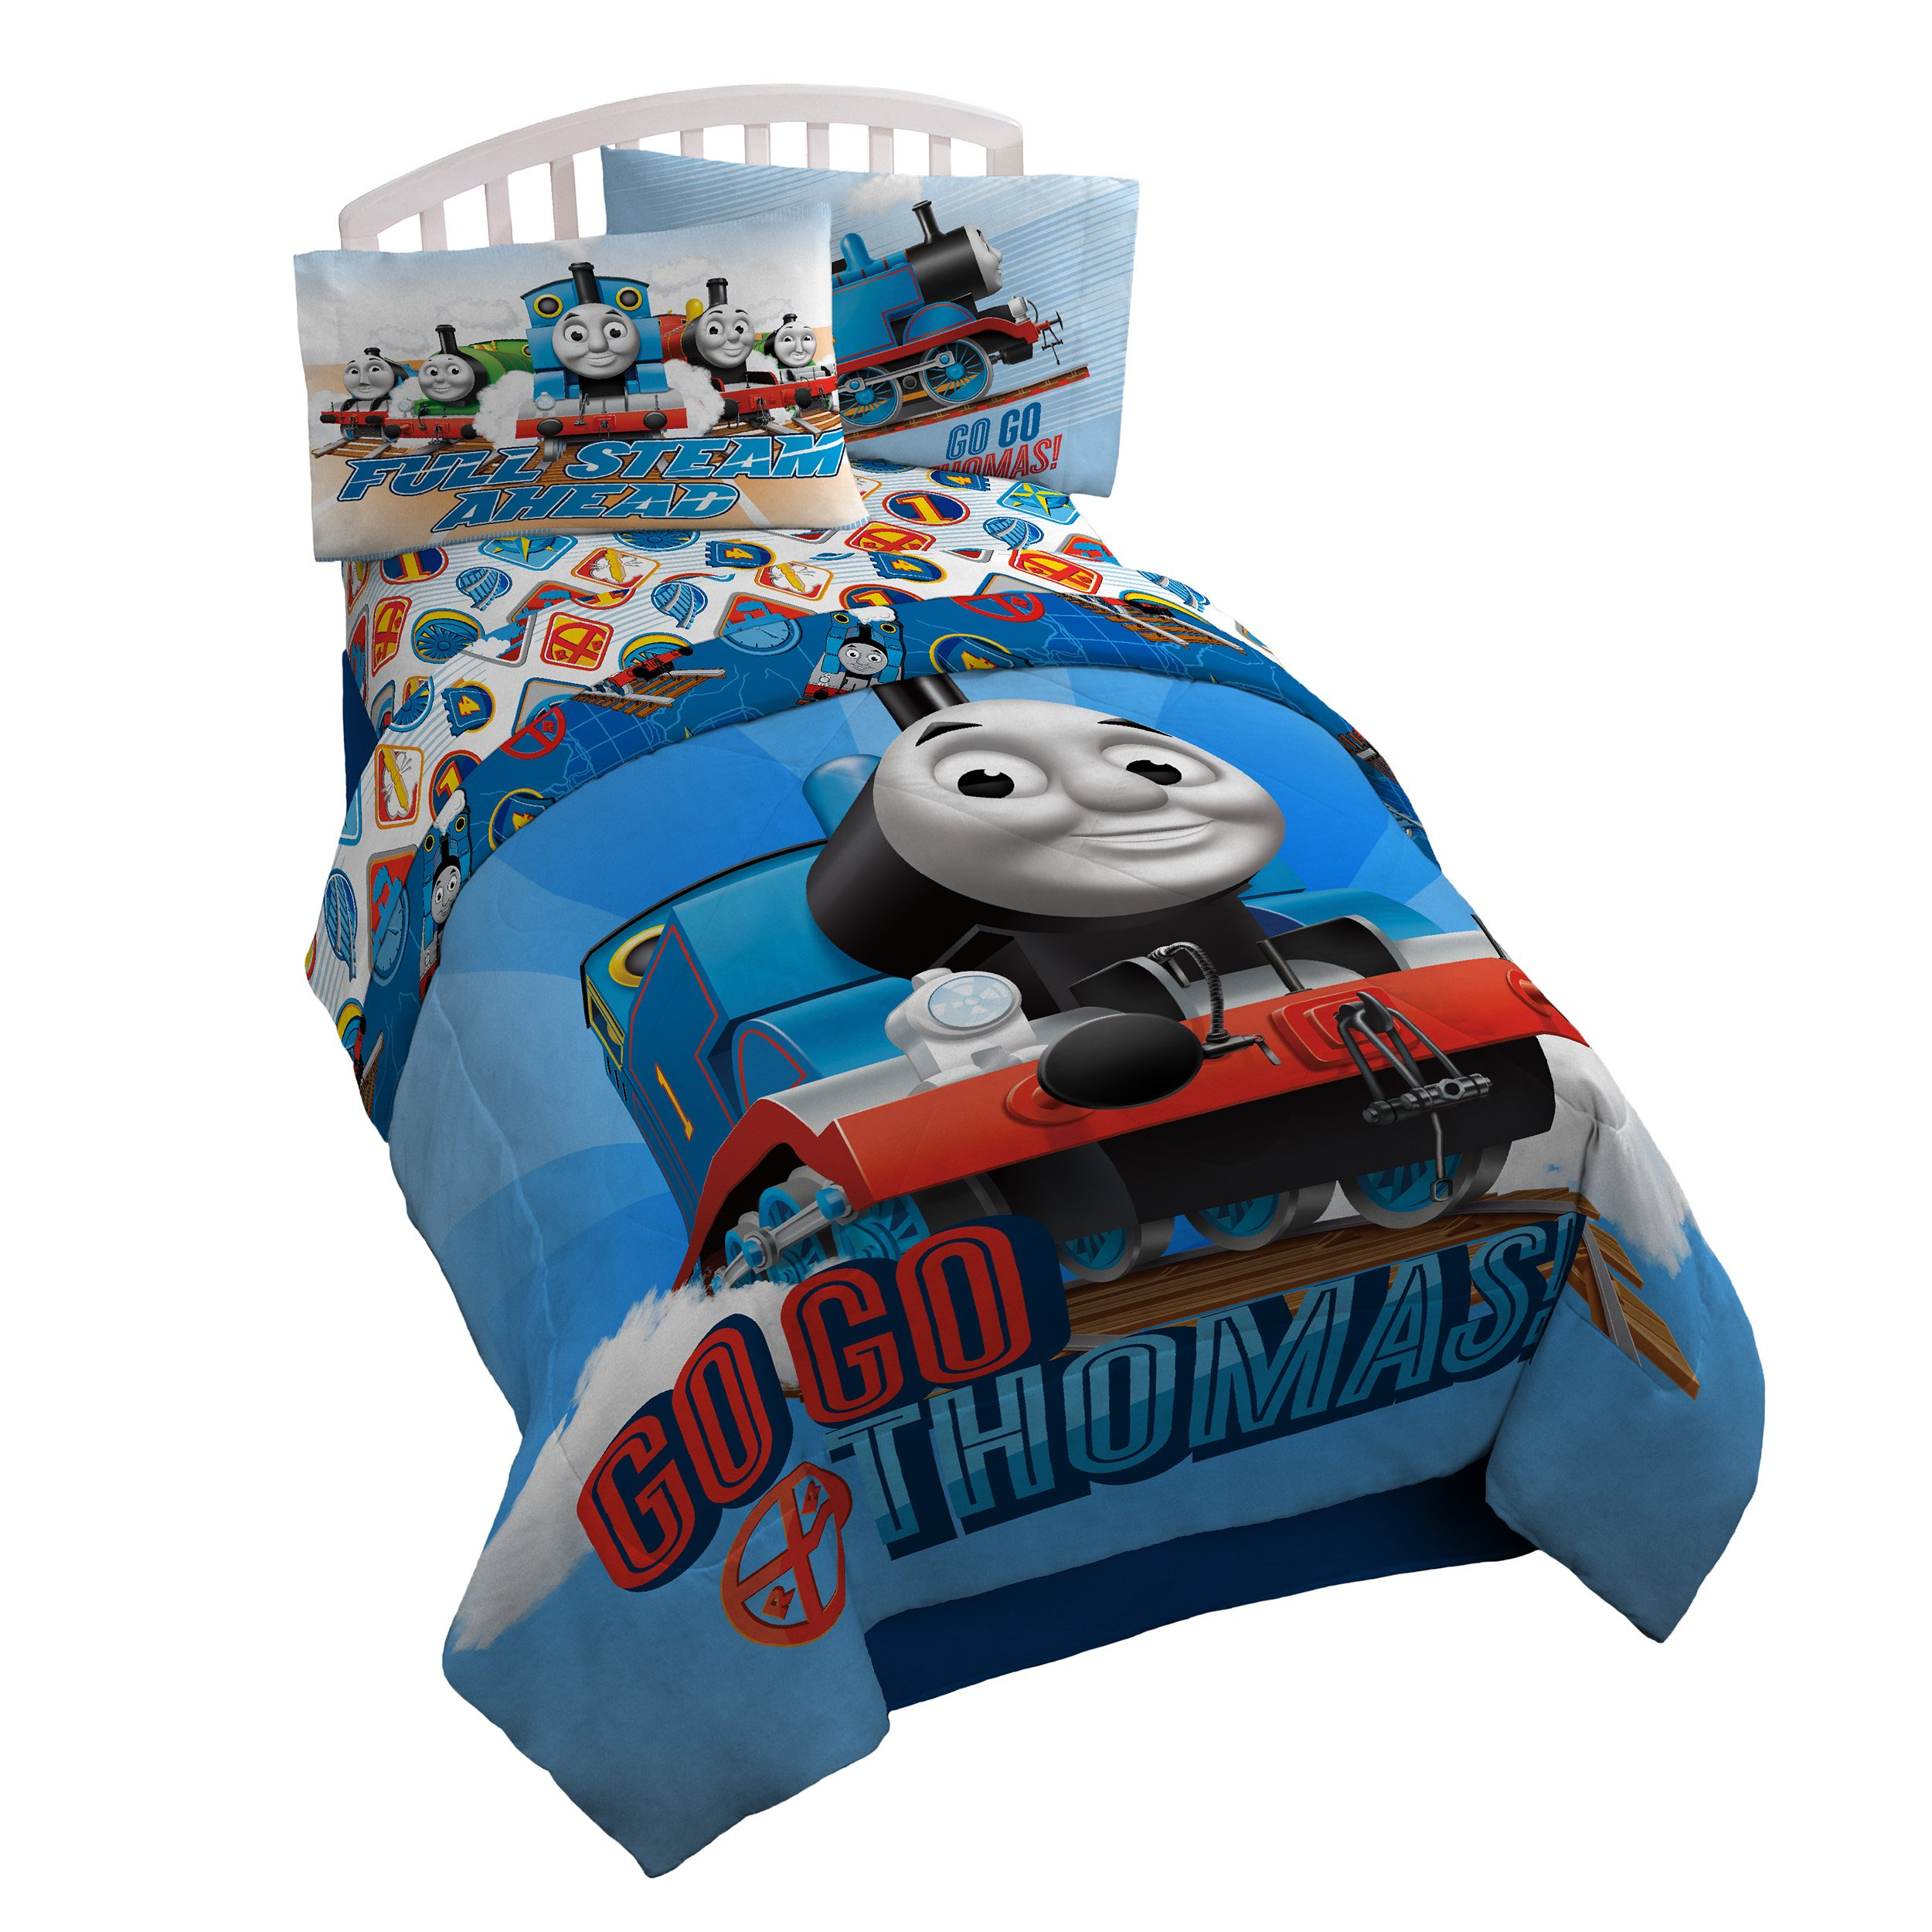 Thomas the Tank Engine 'Go Go' Microfiber Twin Comforter by Mattel